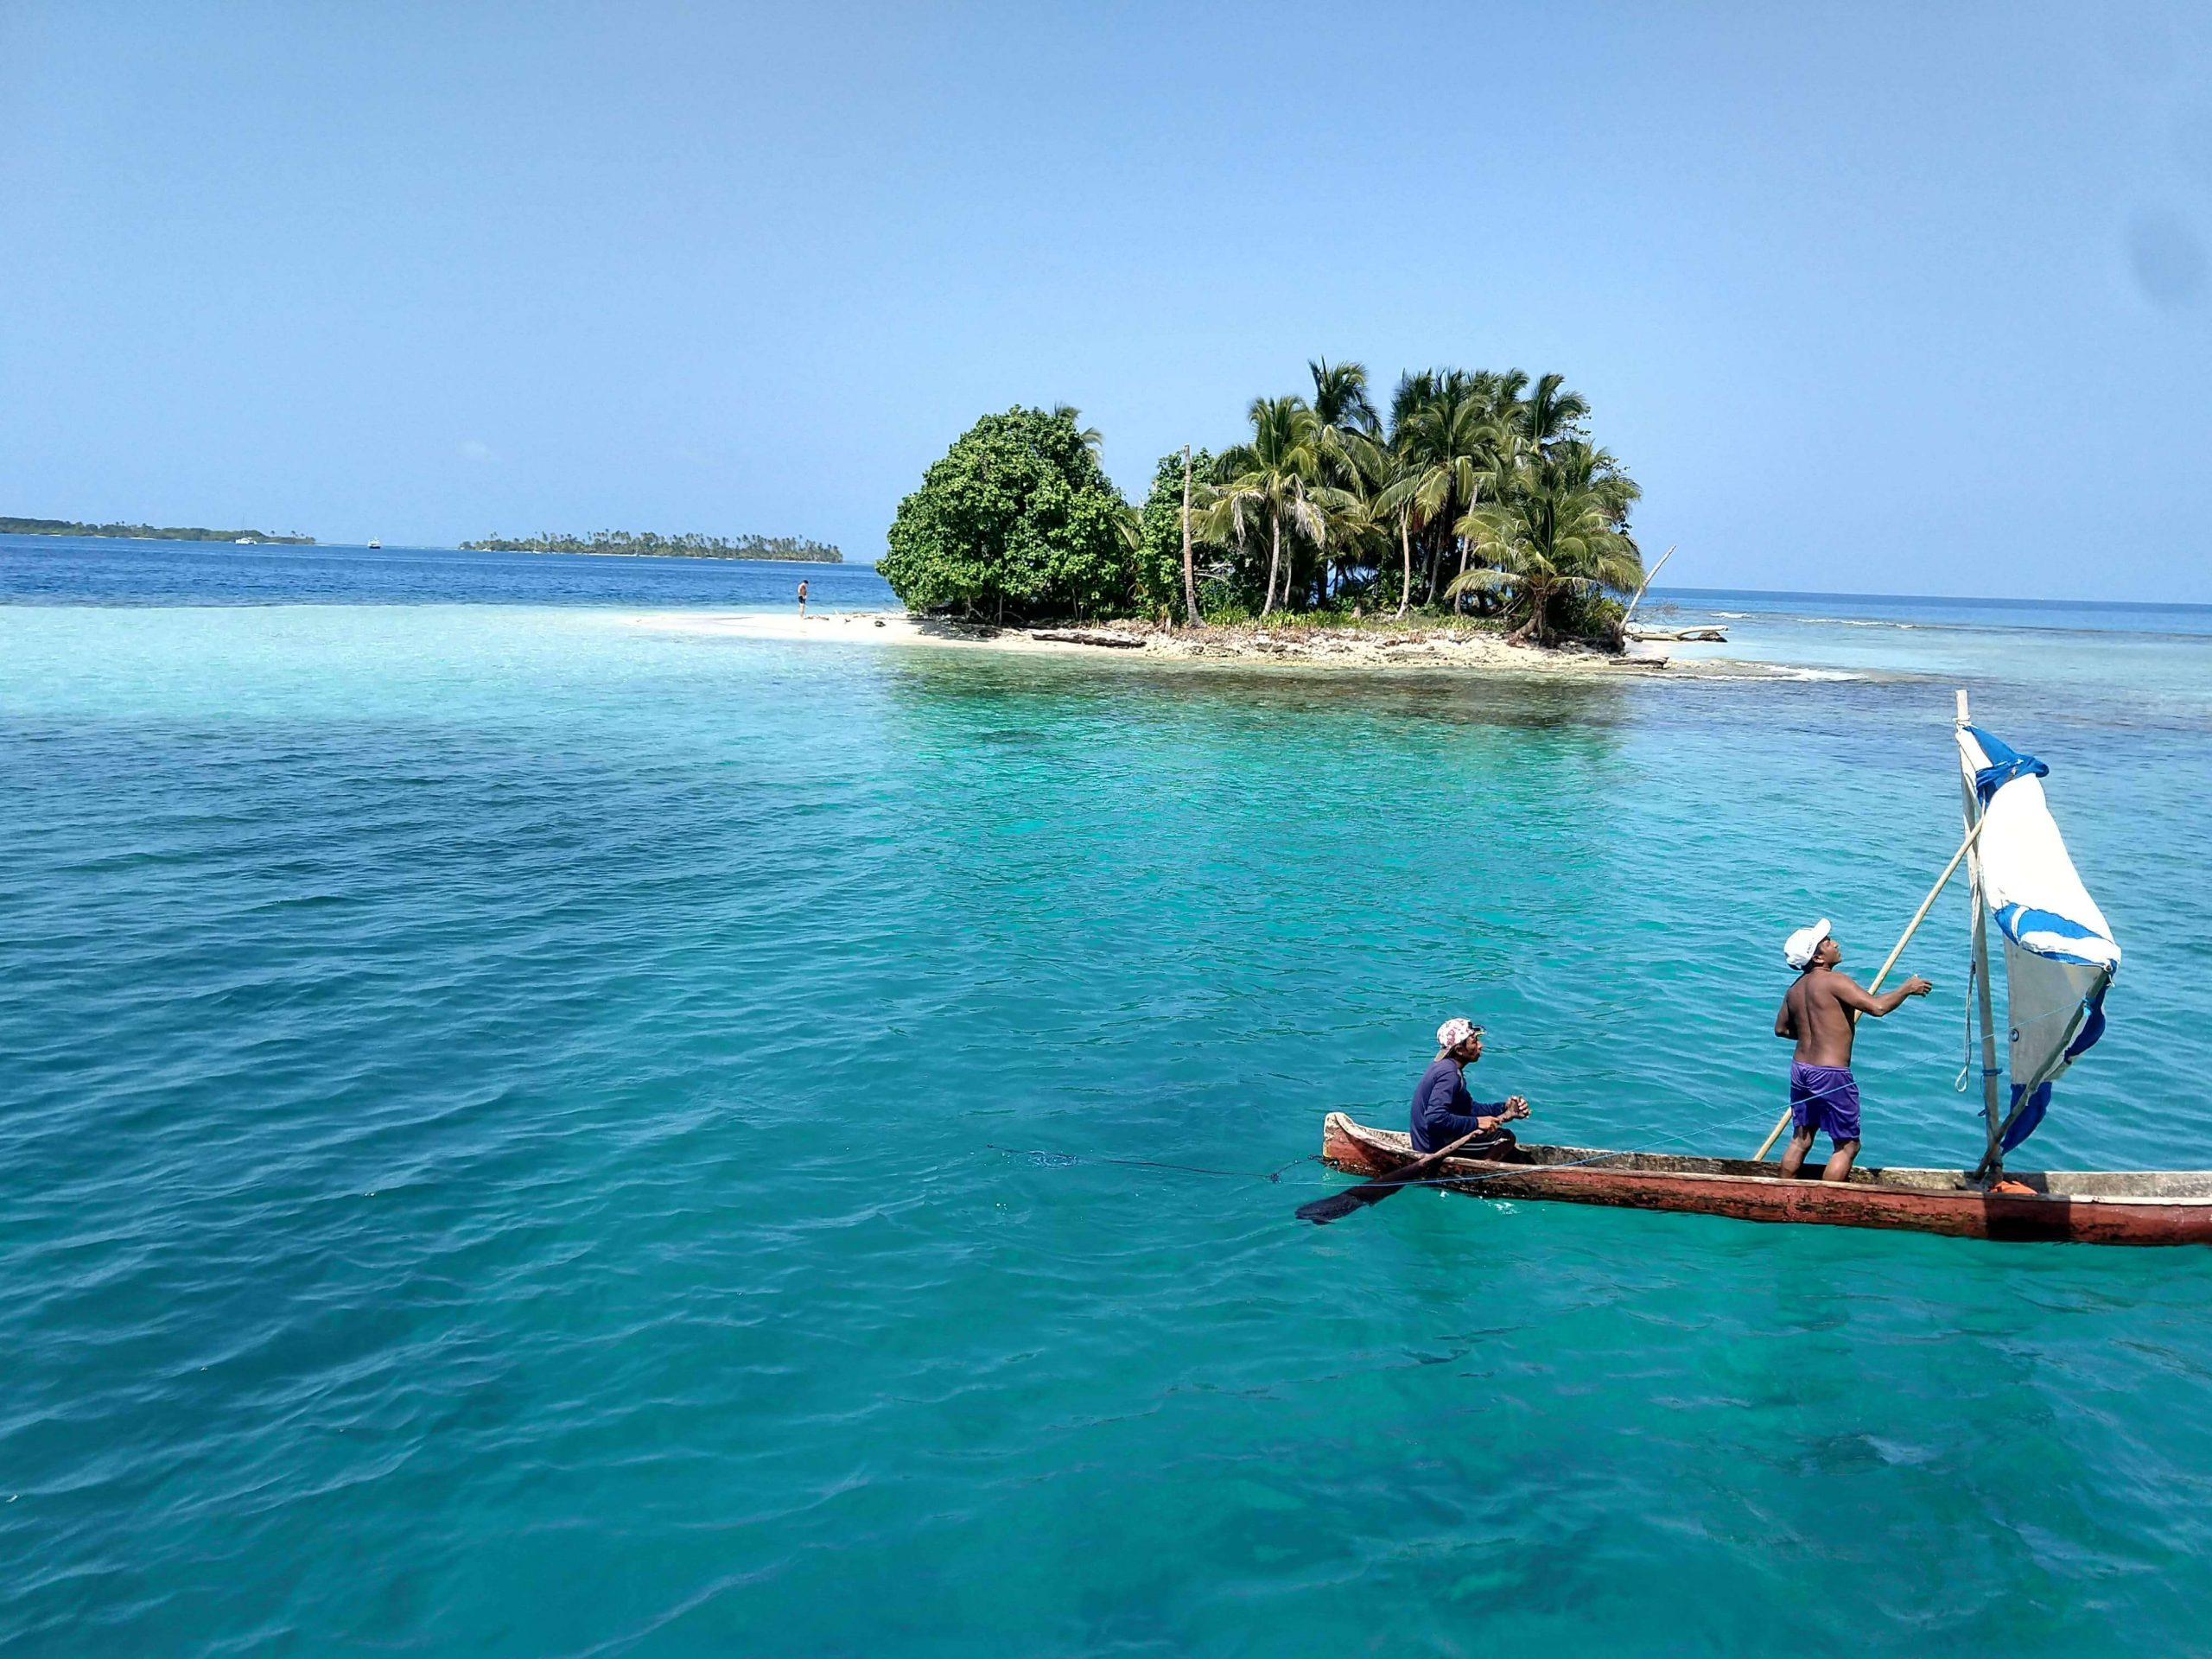 San Blas island and traditional Kuna dugout canoe with two local fishermen